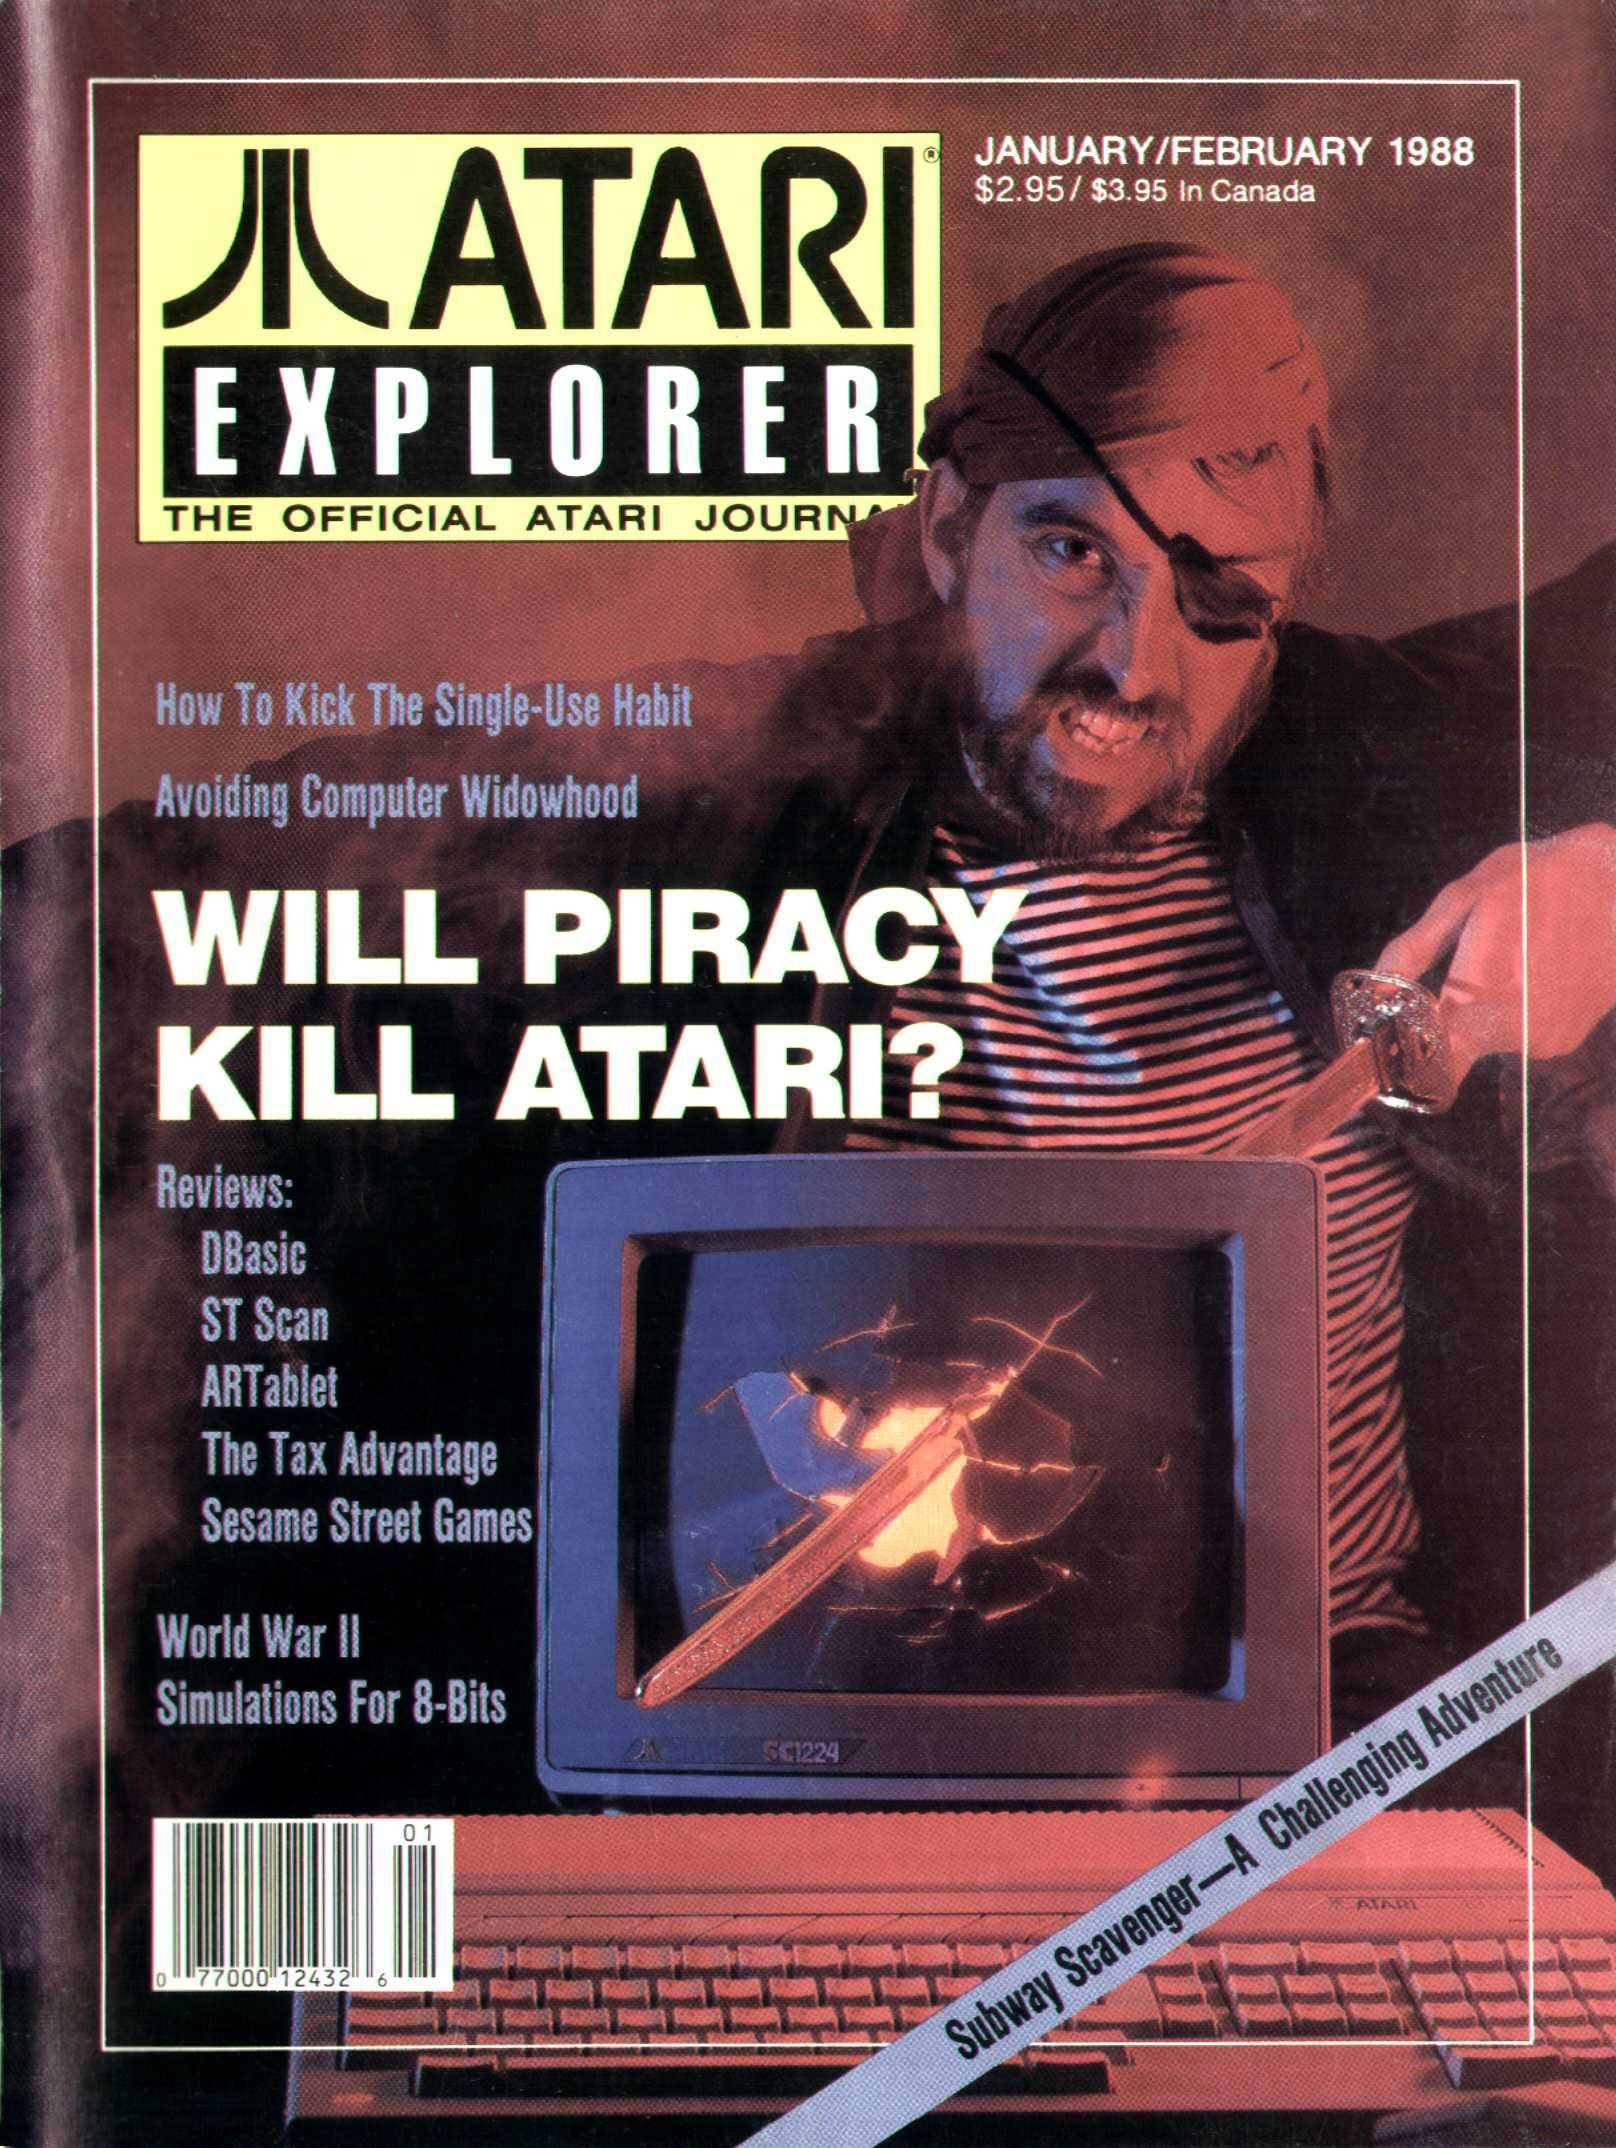 Atari Explorer Issue 12 (January / February 1988)